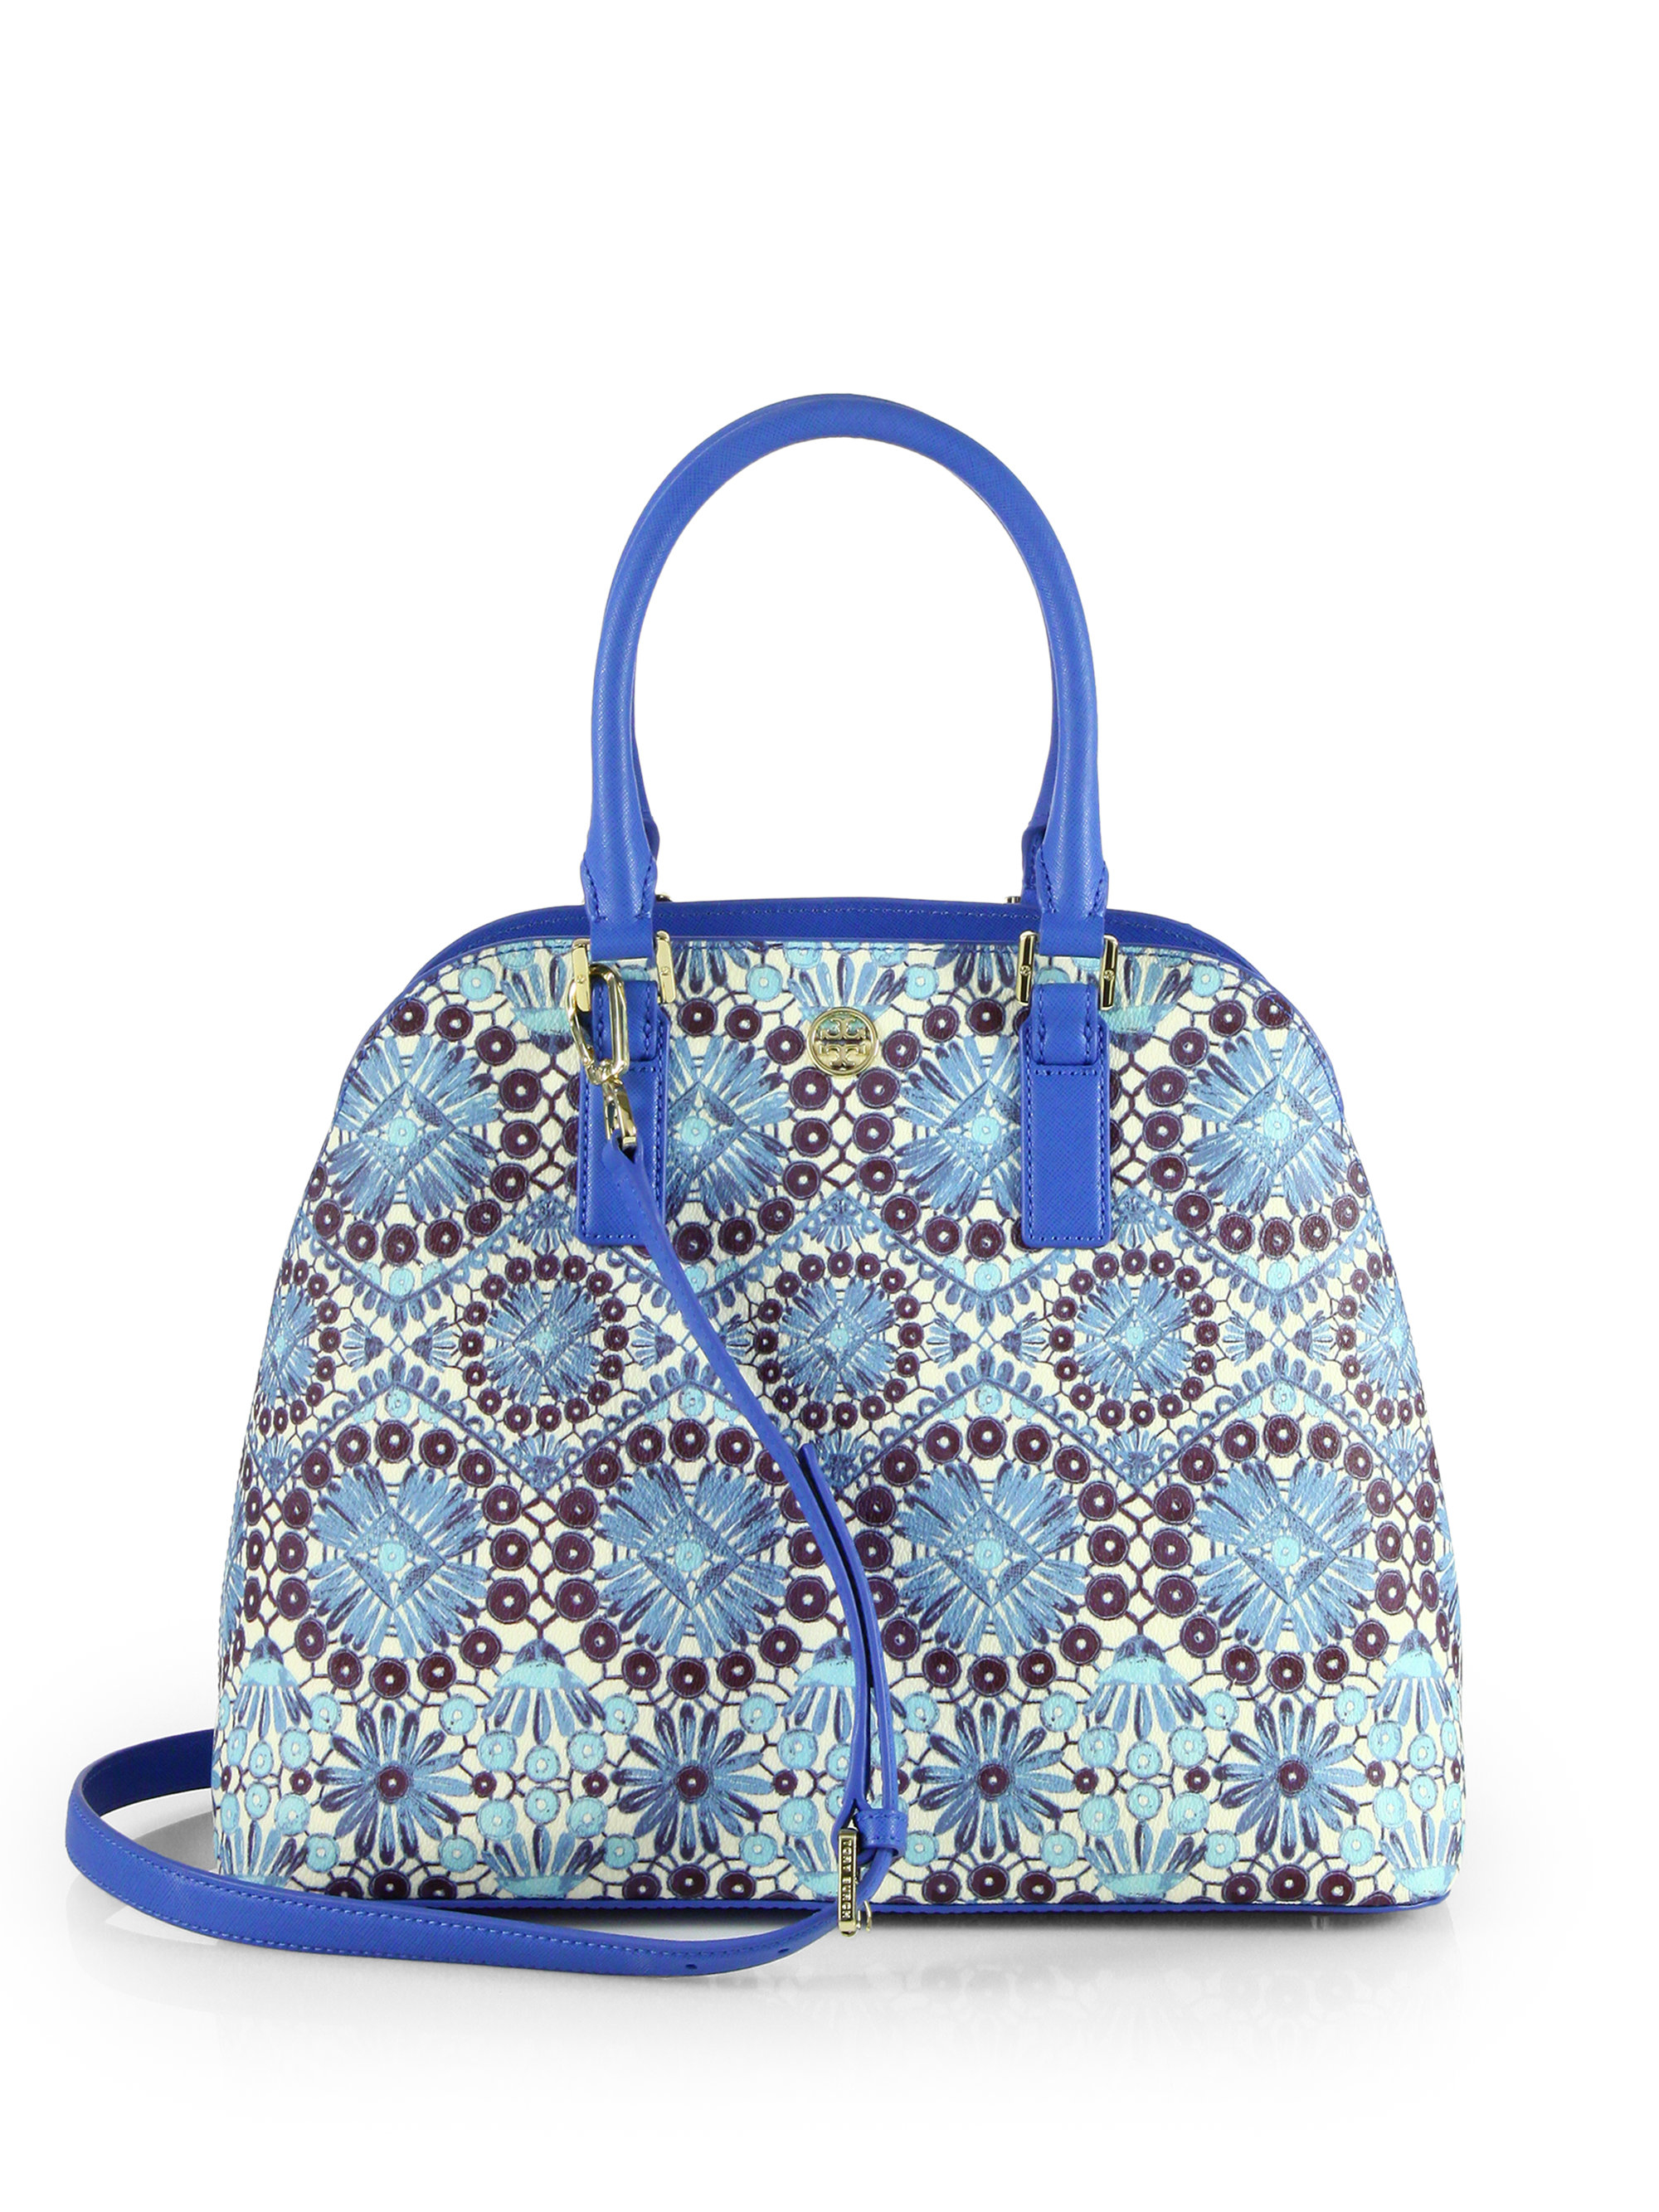 Tory Burch Robinson Printed Open Dome Bag In Blue Bahama